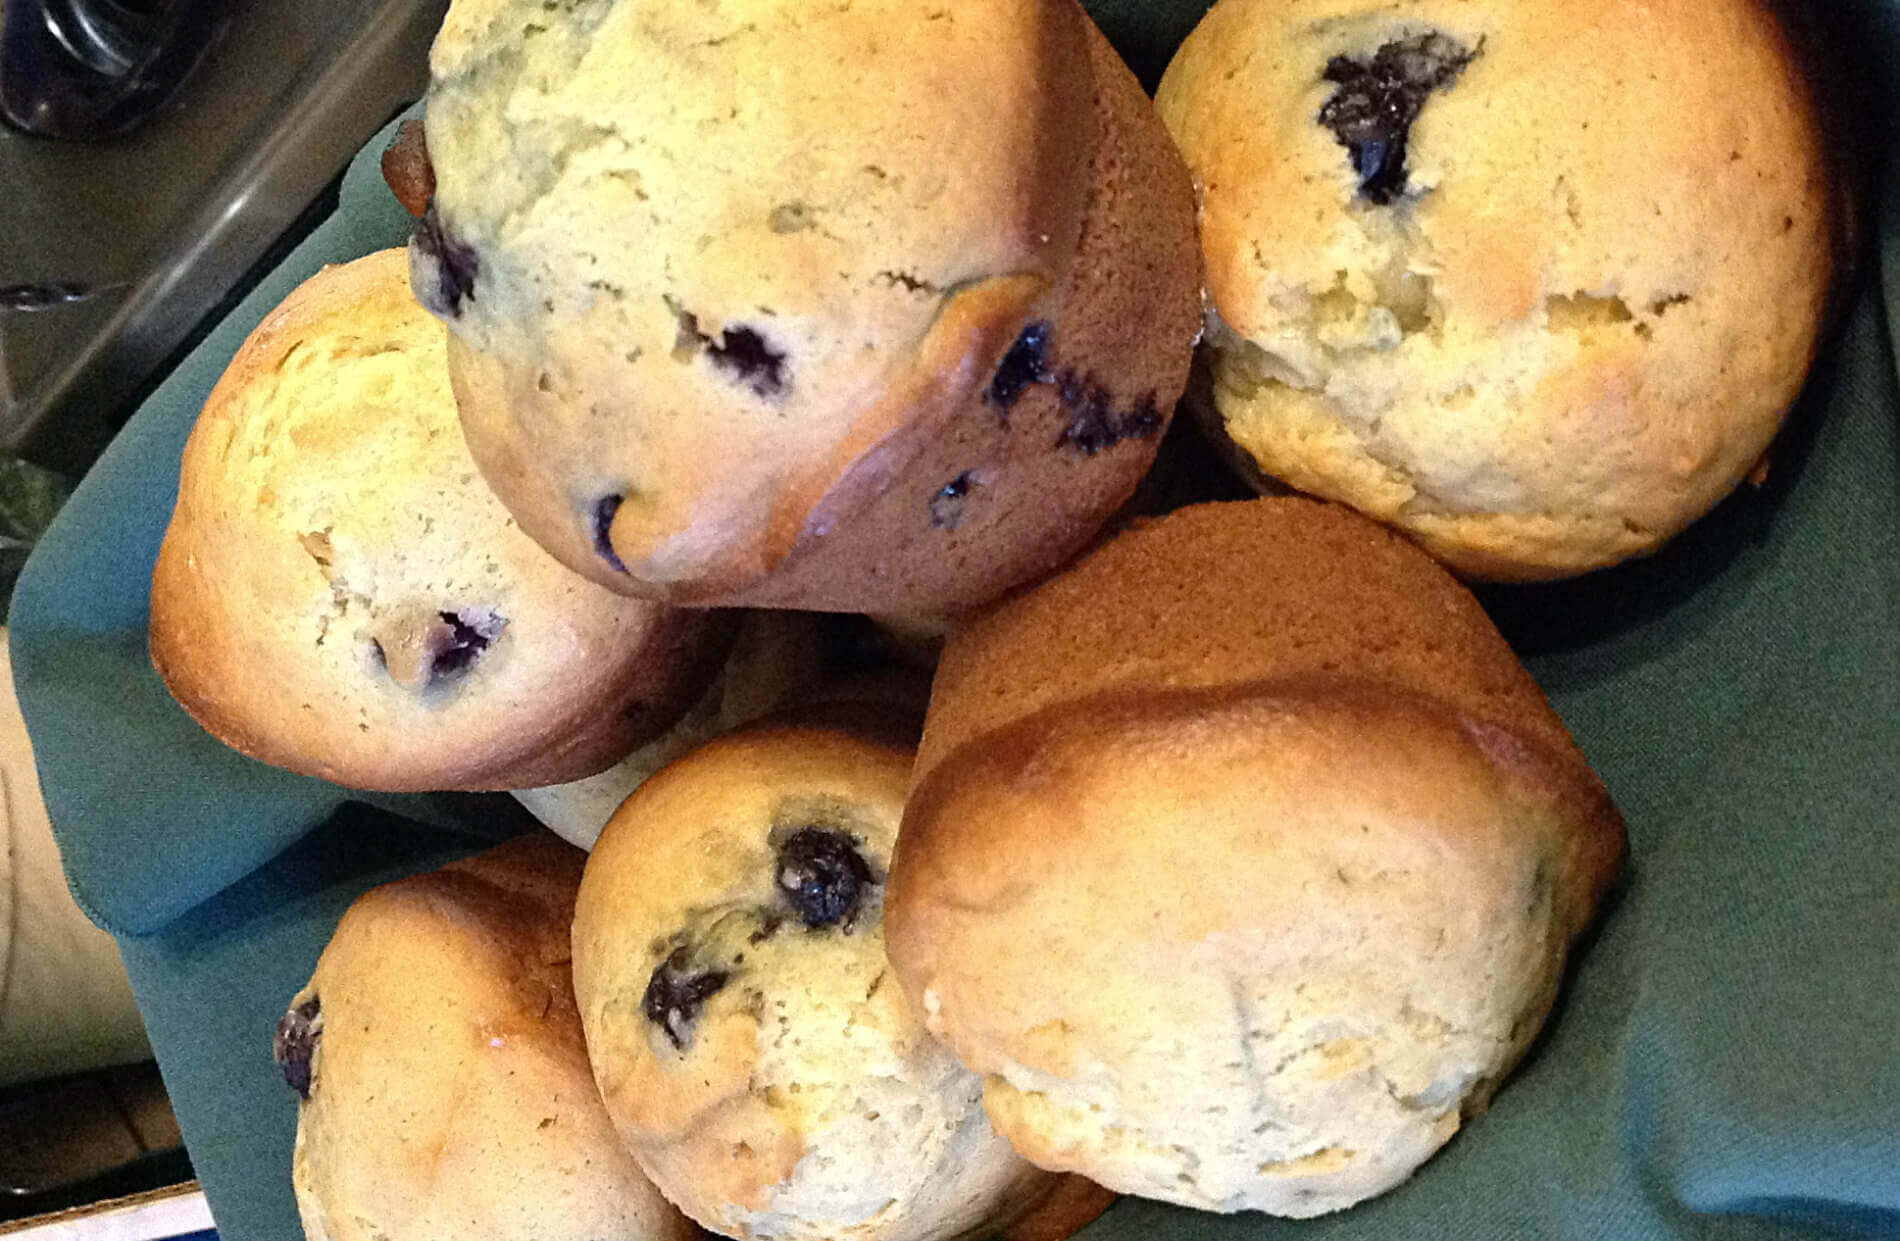 Blueberry muffins in basket with green cloth liner